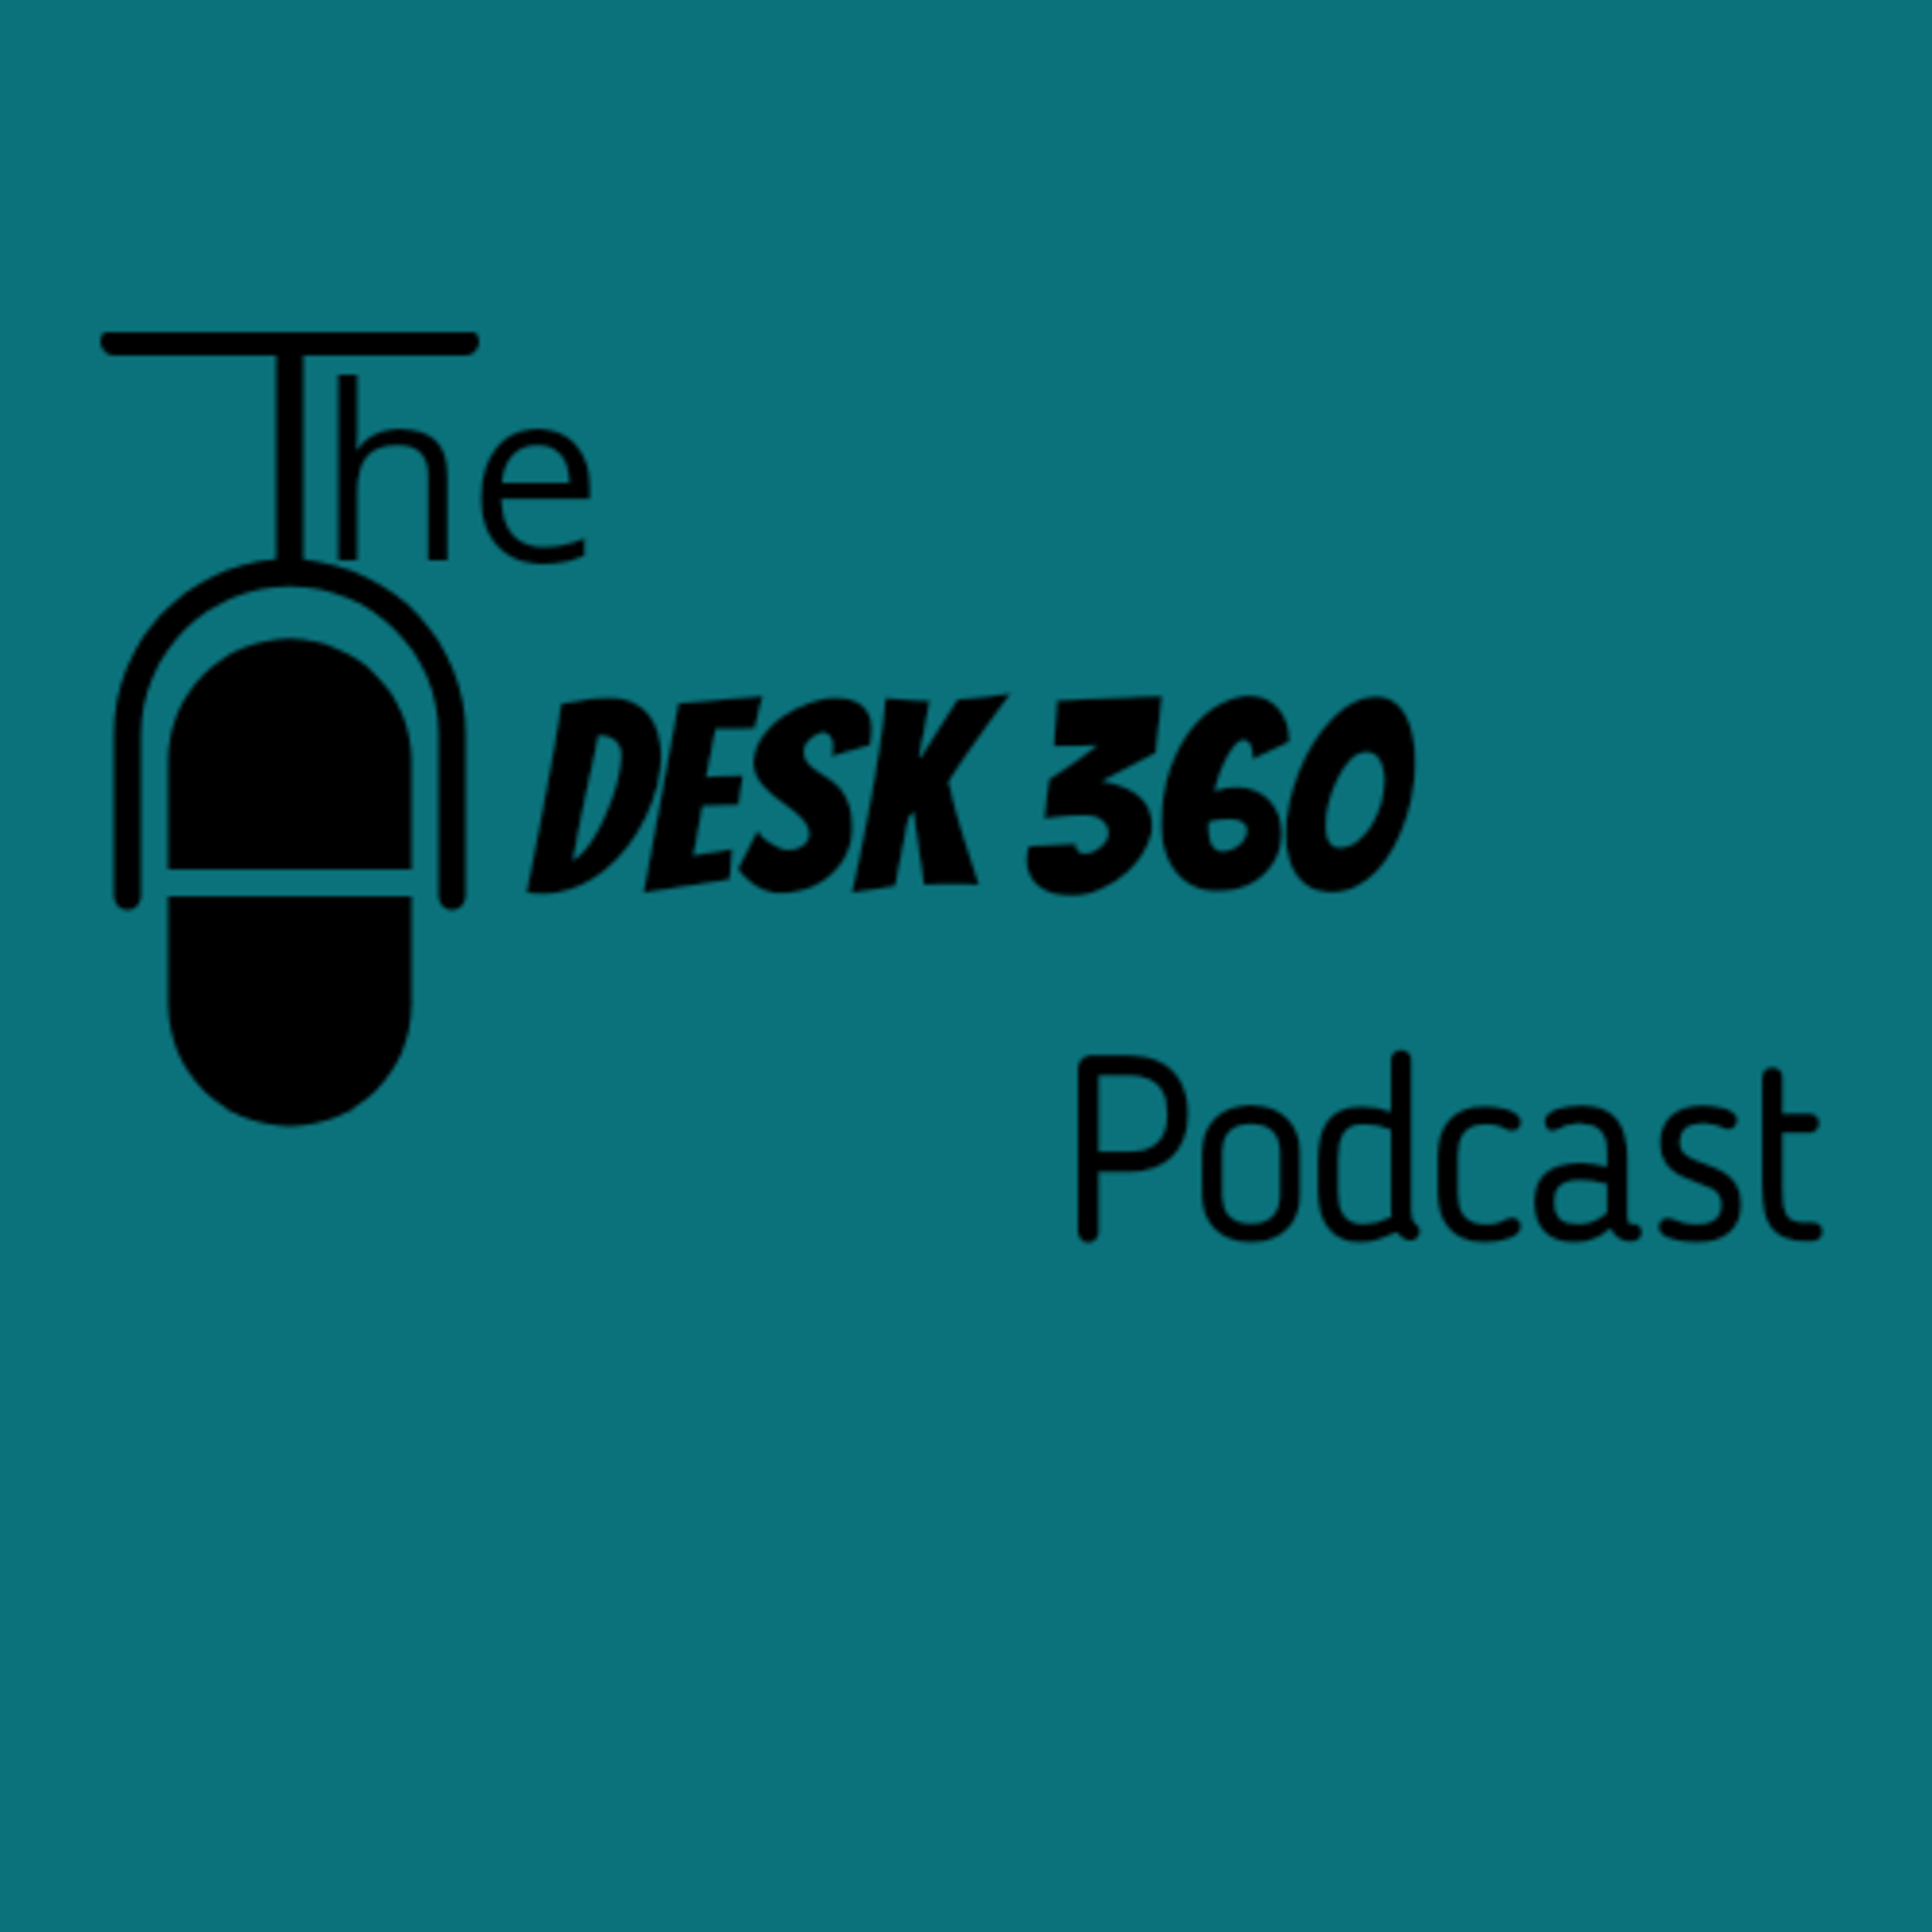 The Desk 360 Podcast